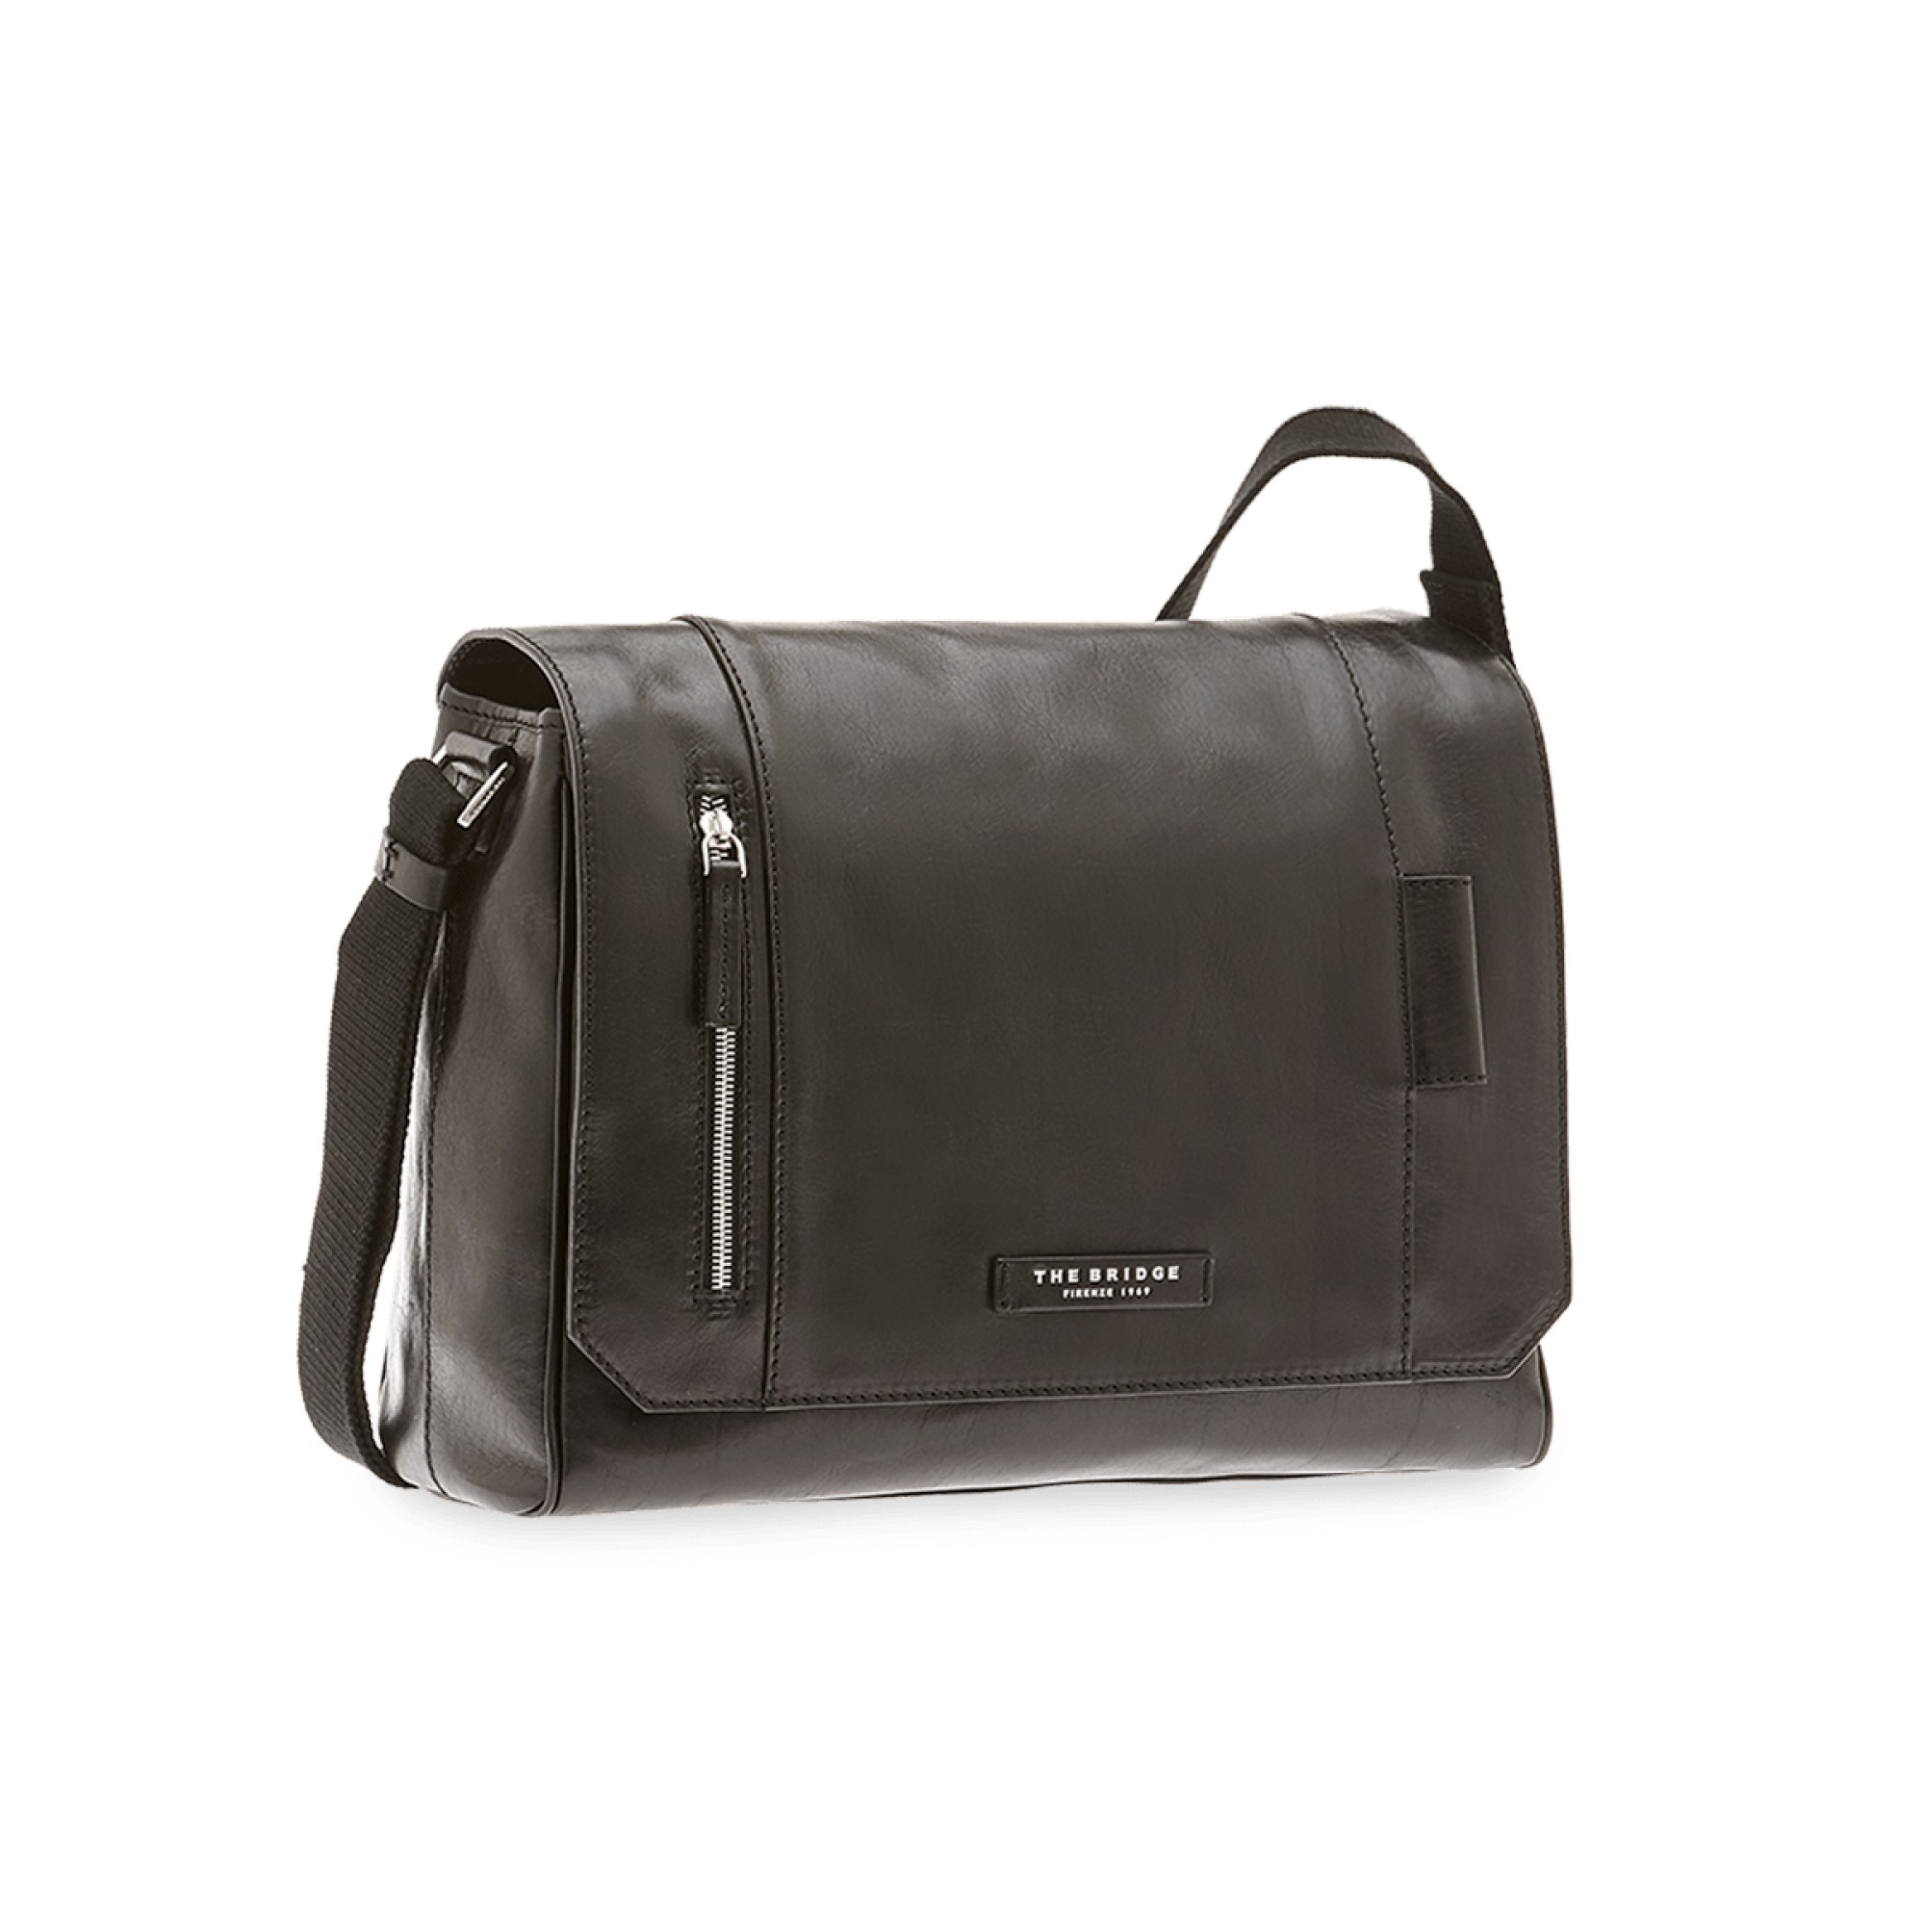 BORSA THE BRIDGE PASSPARTOUT UOMO MESSENGER 05420501 20 NERO